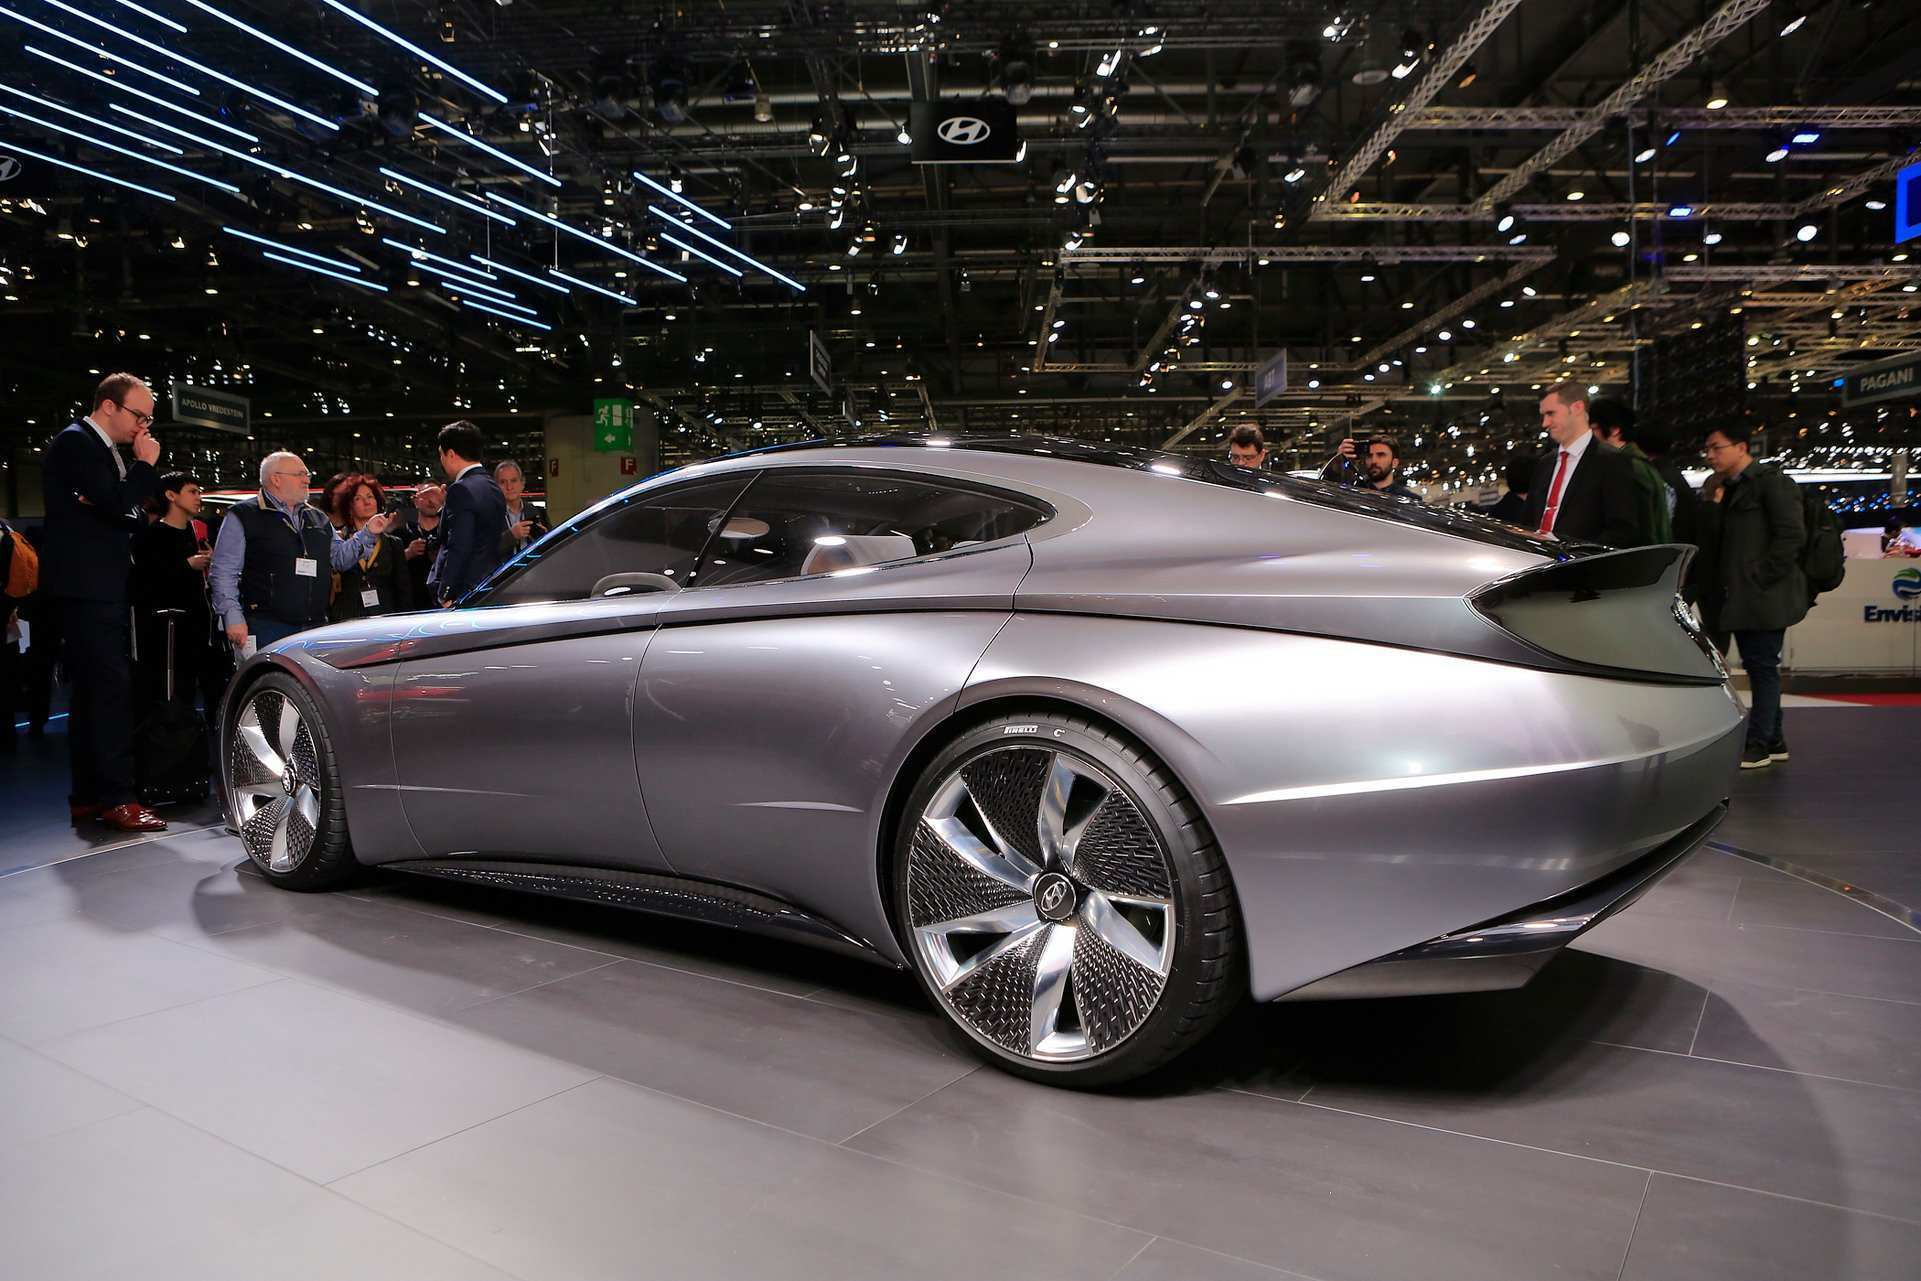 79 All New Hyundai Concept 2020 Redesign for Hyundai Concept 2020